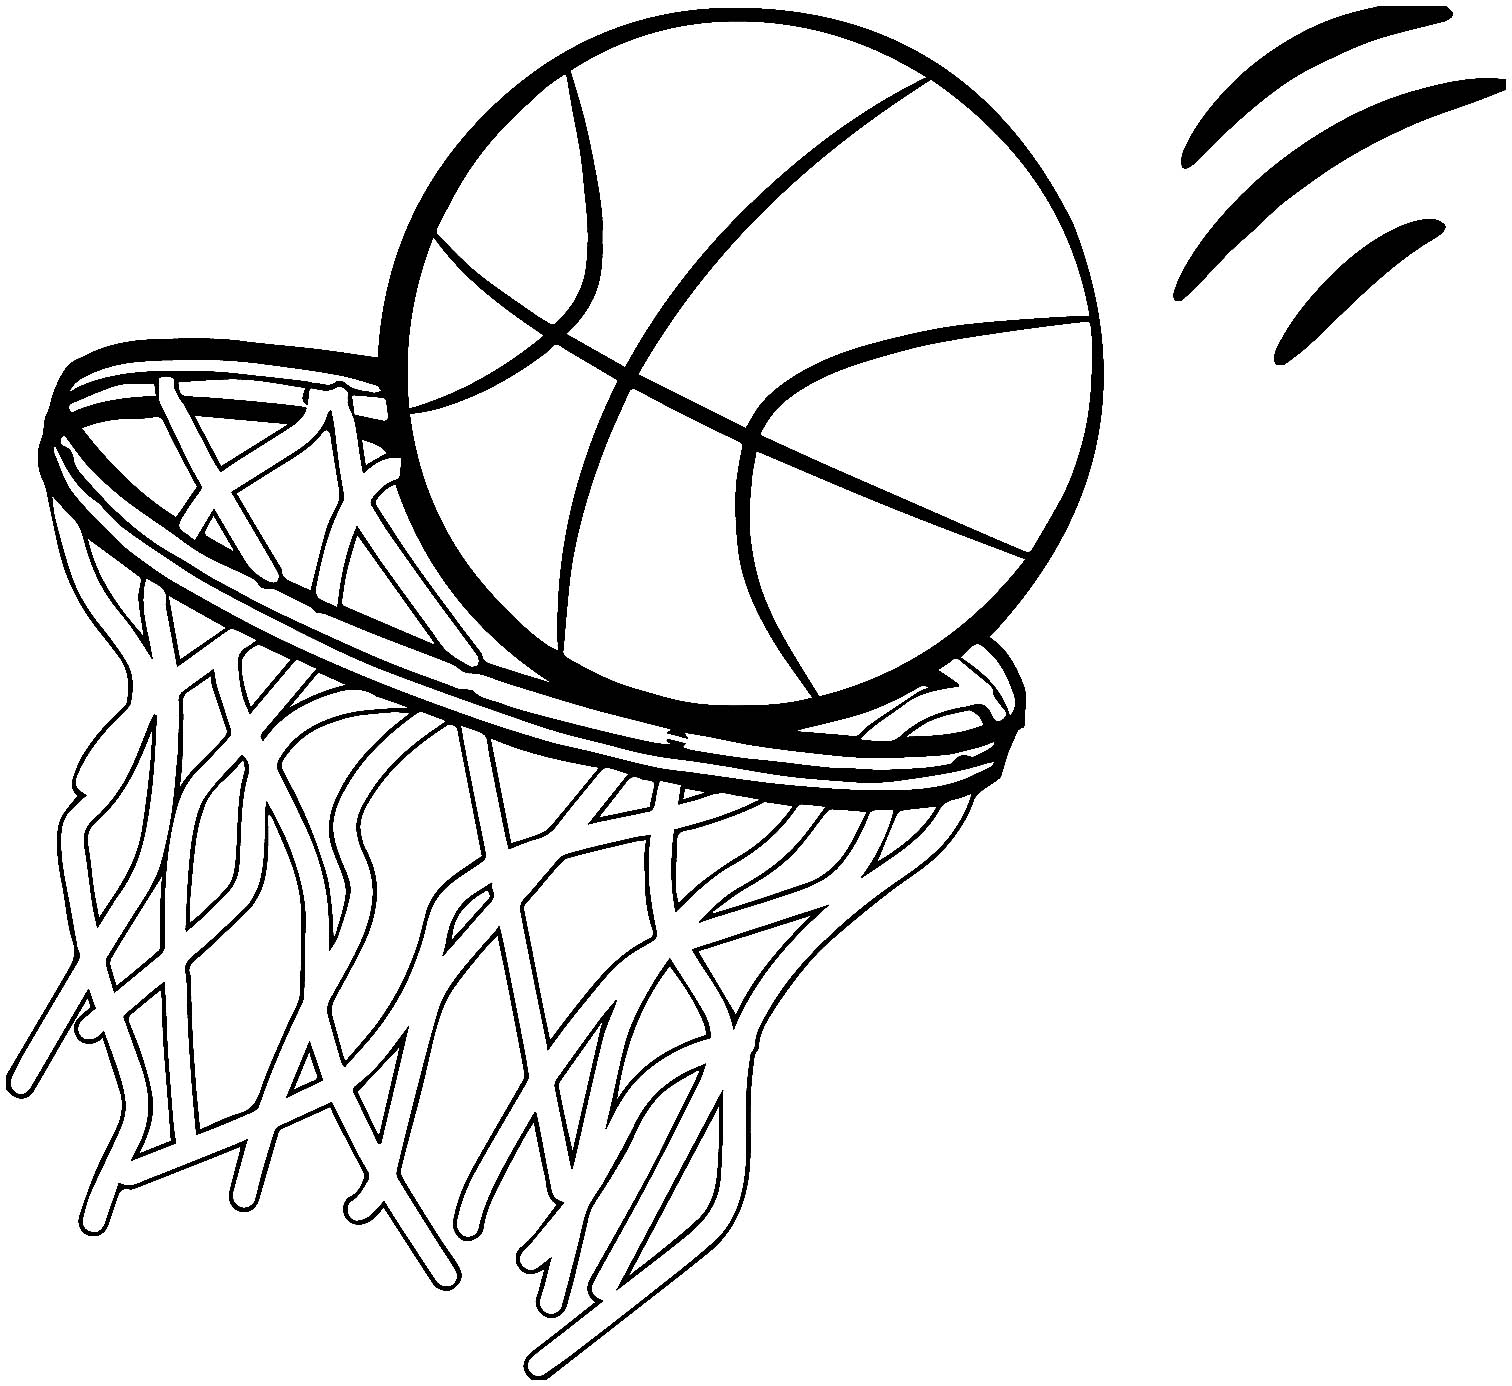 coloring pages of basketball basketball drawing ideas free download on clipartmag of basketball pages coloring